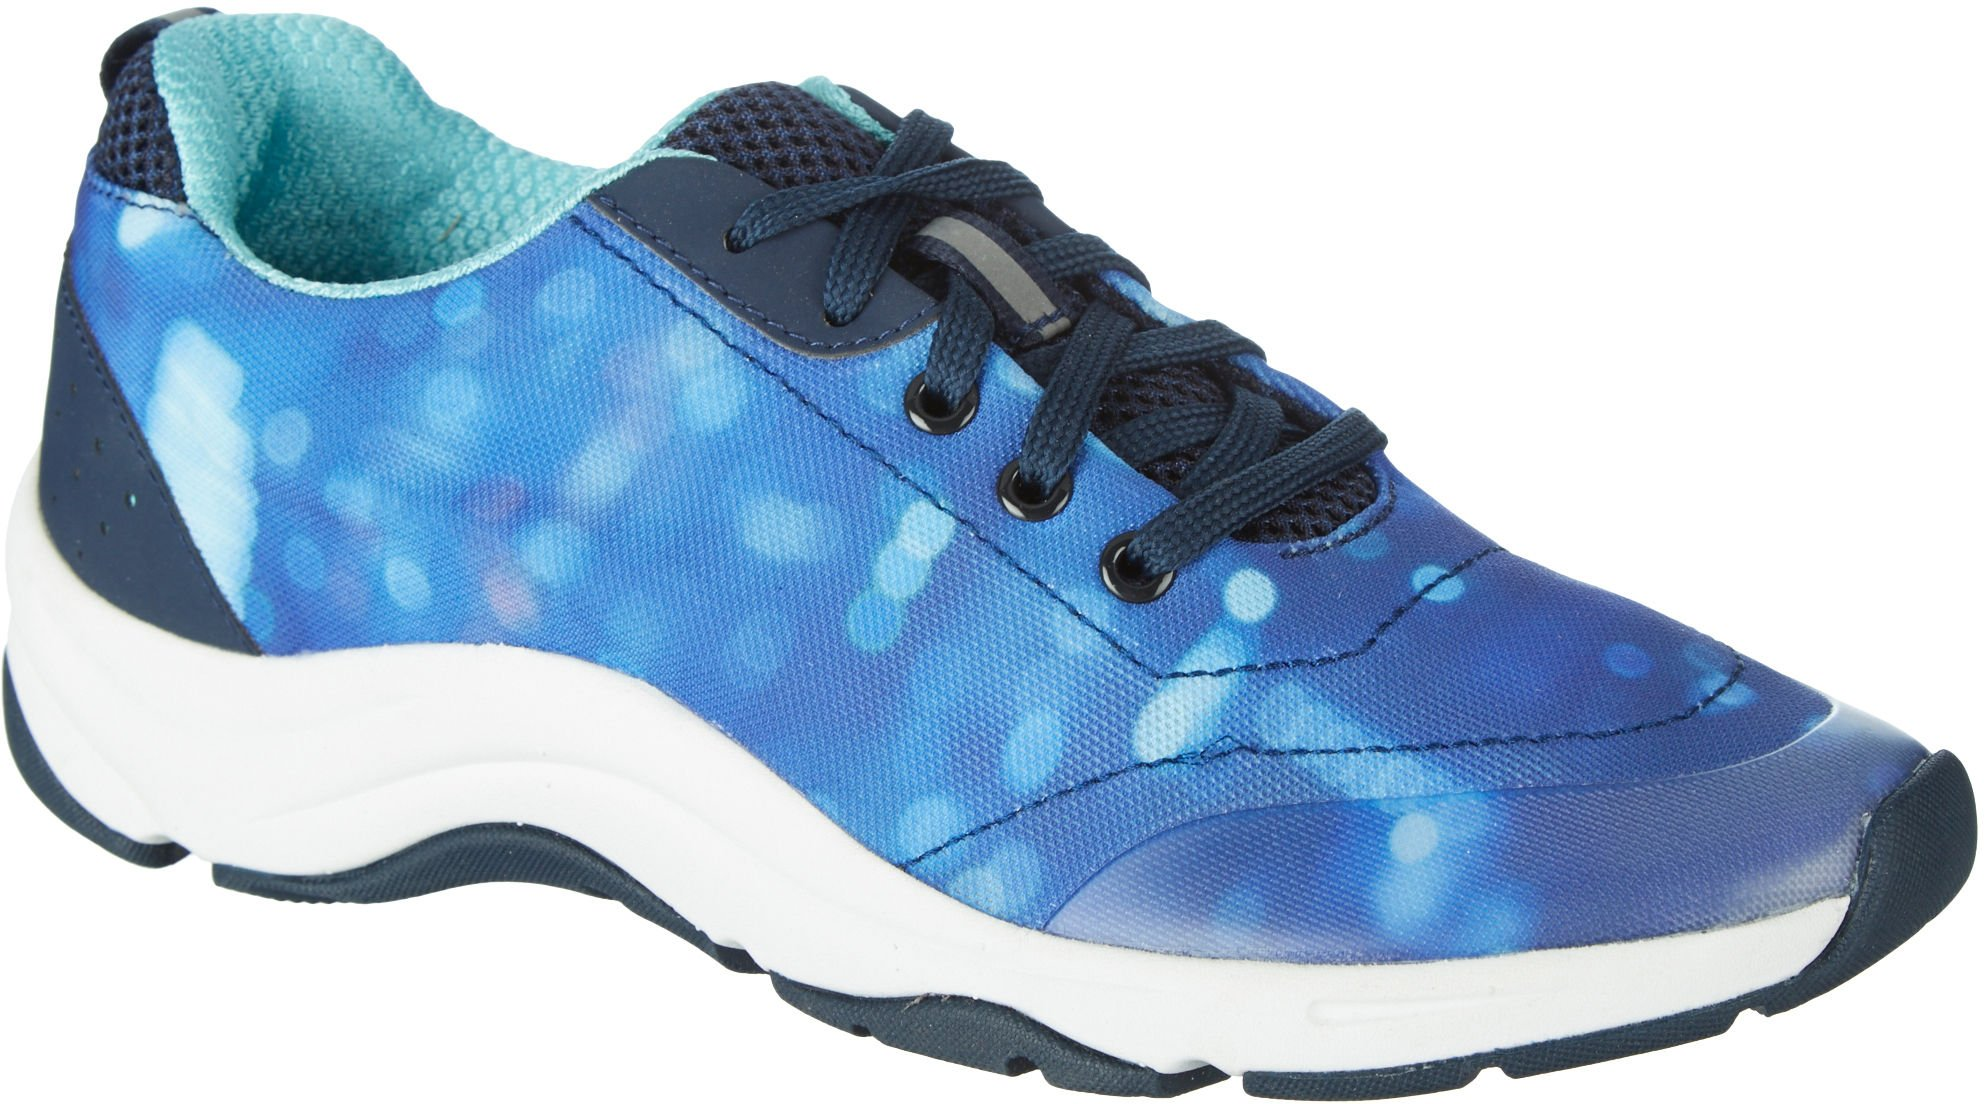 Vionic Womens Action Tourney Womens Active Lace Up Blue Teal Size 7.5